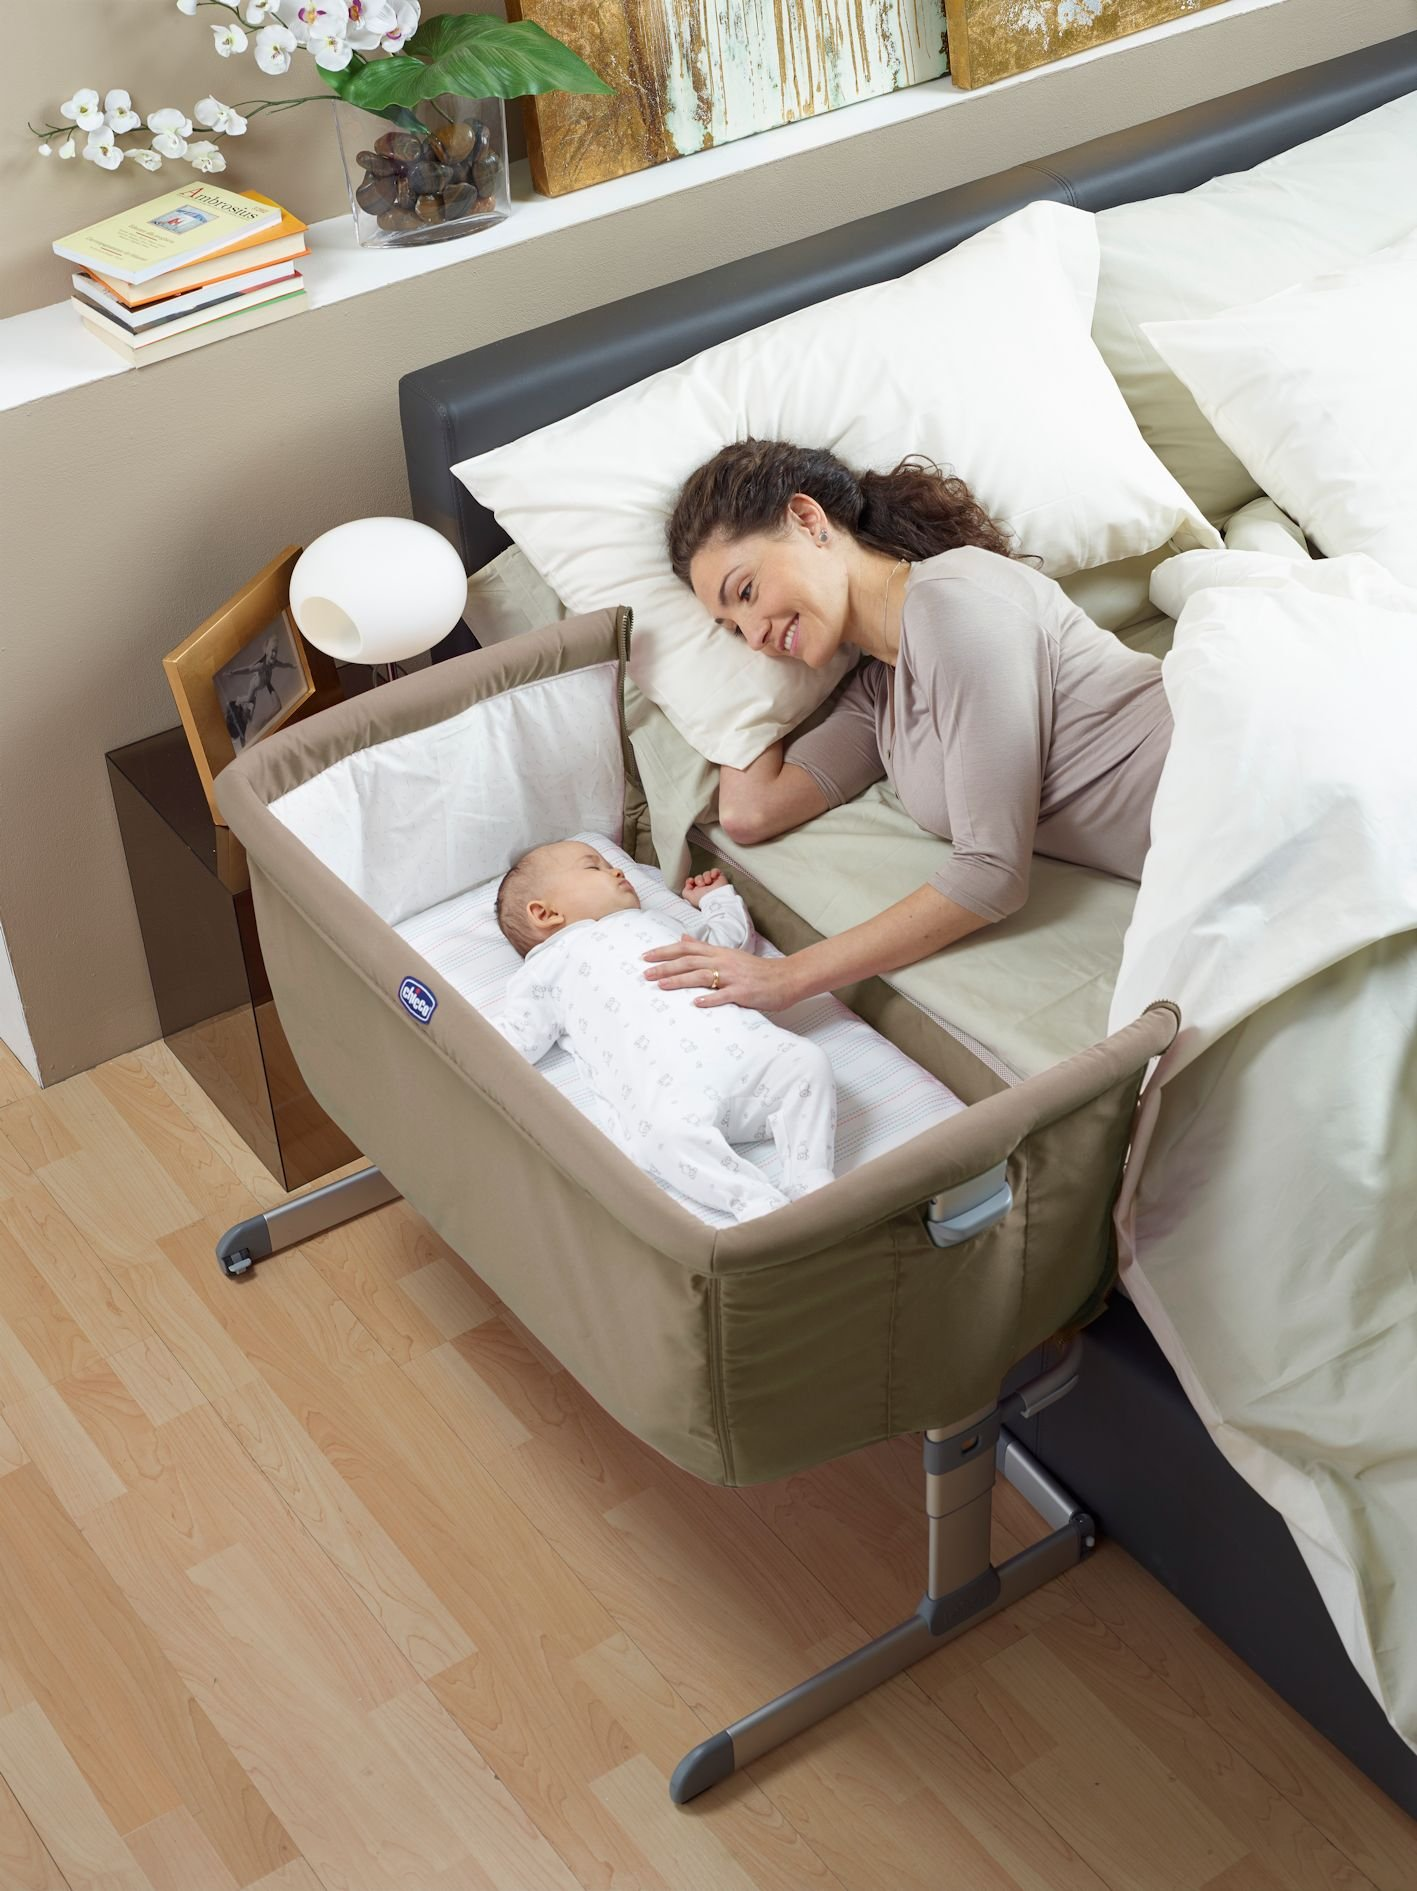 Chicco Next2me Side Sleeping Crib - Dove Grey Chicco Co-sleeping crib that promotes side-sleeping and allows you to sleep close to your child Can be used as a normal crib as baby grows.Open size: 66/81 x 93 x 69 Suitable from birth to 6 months/9 kg or until baby can pull themselves into an upright position 7